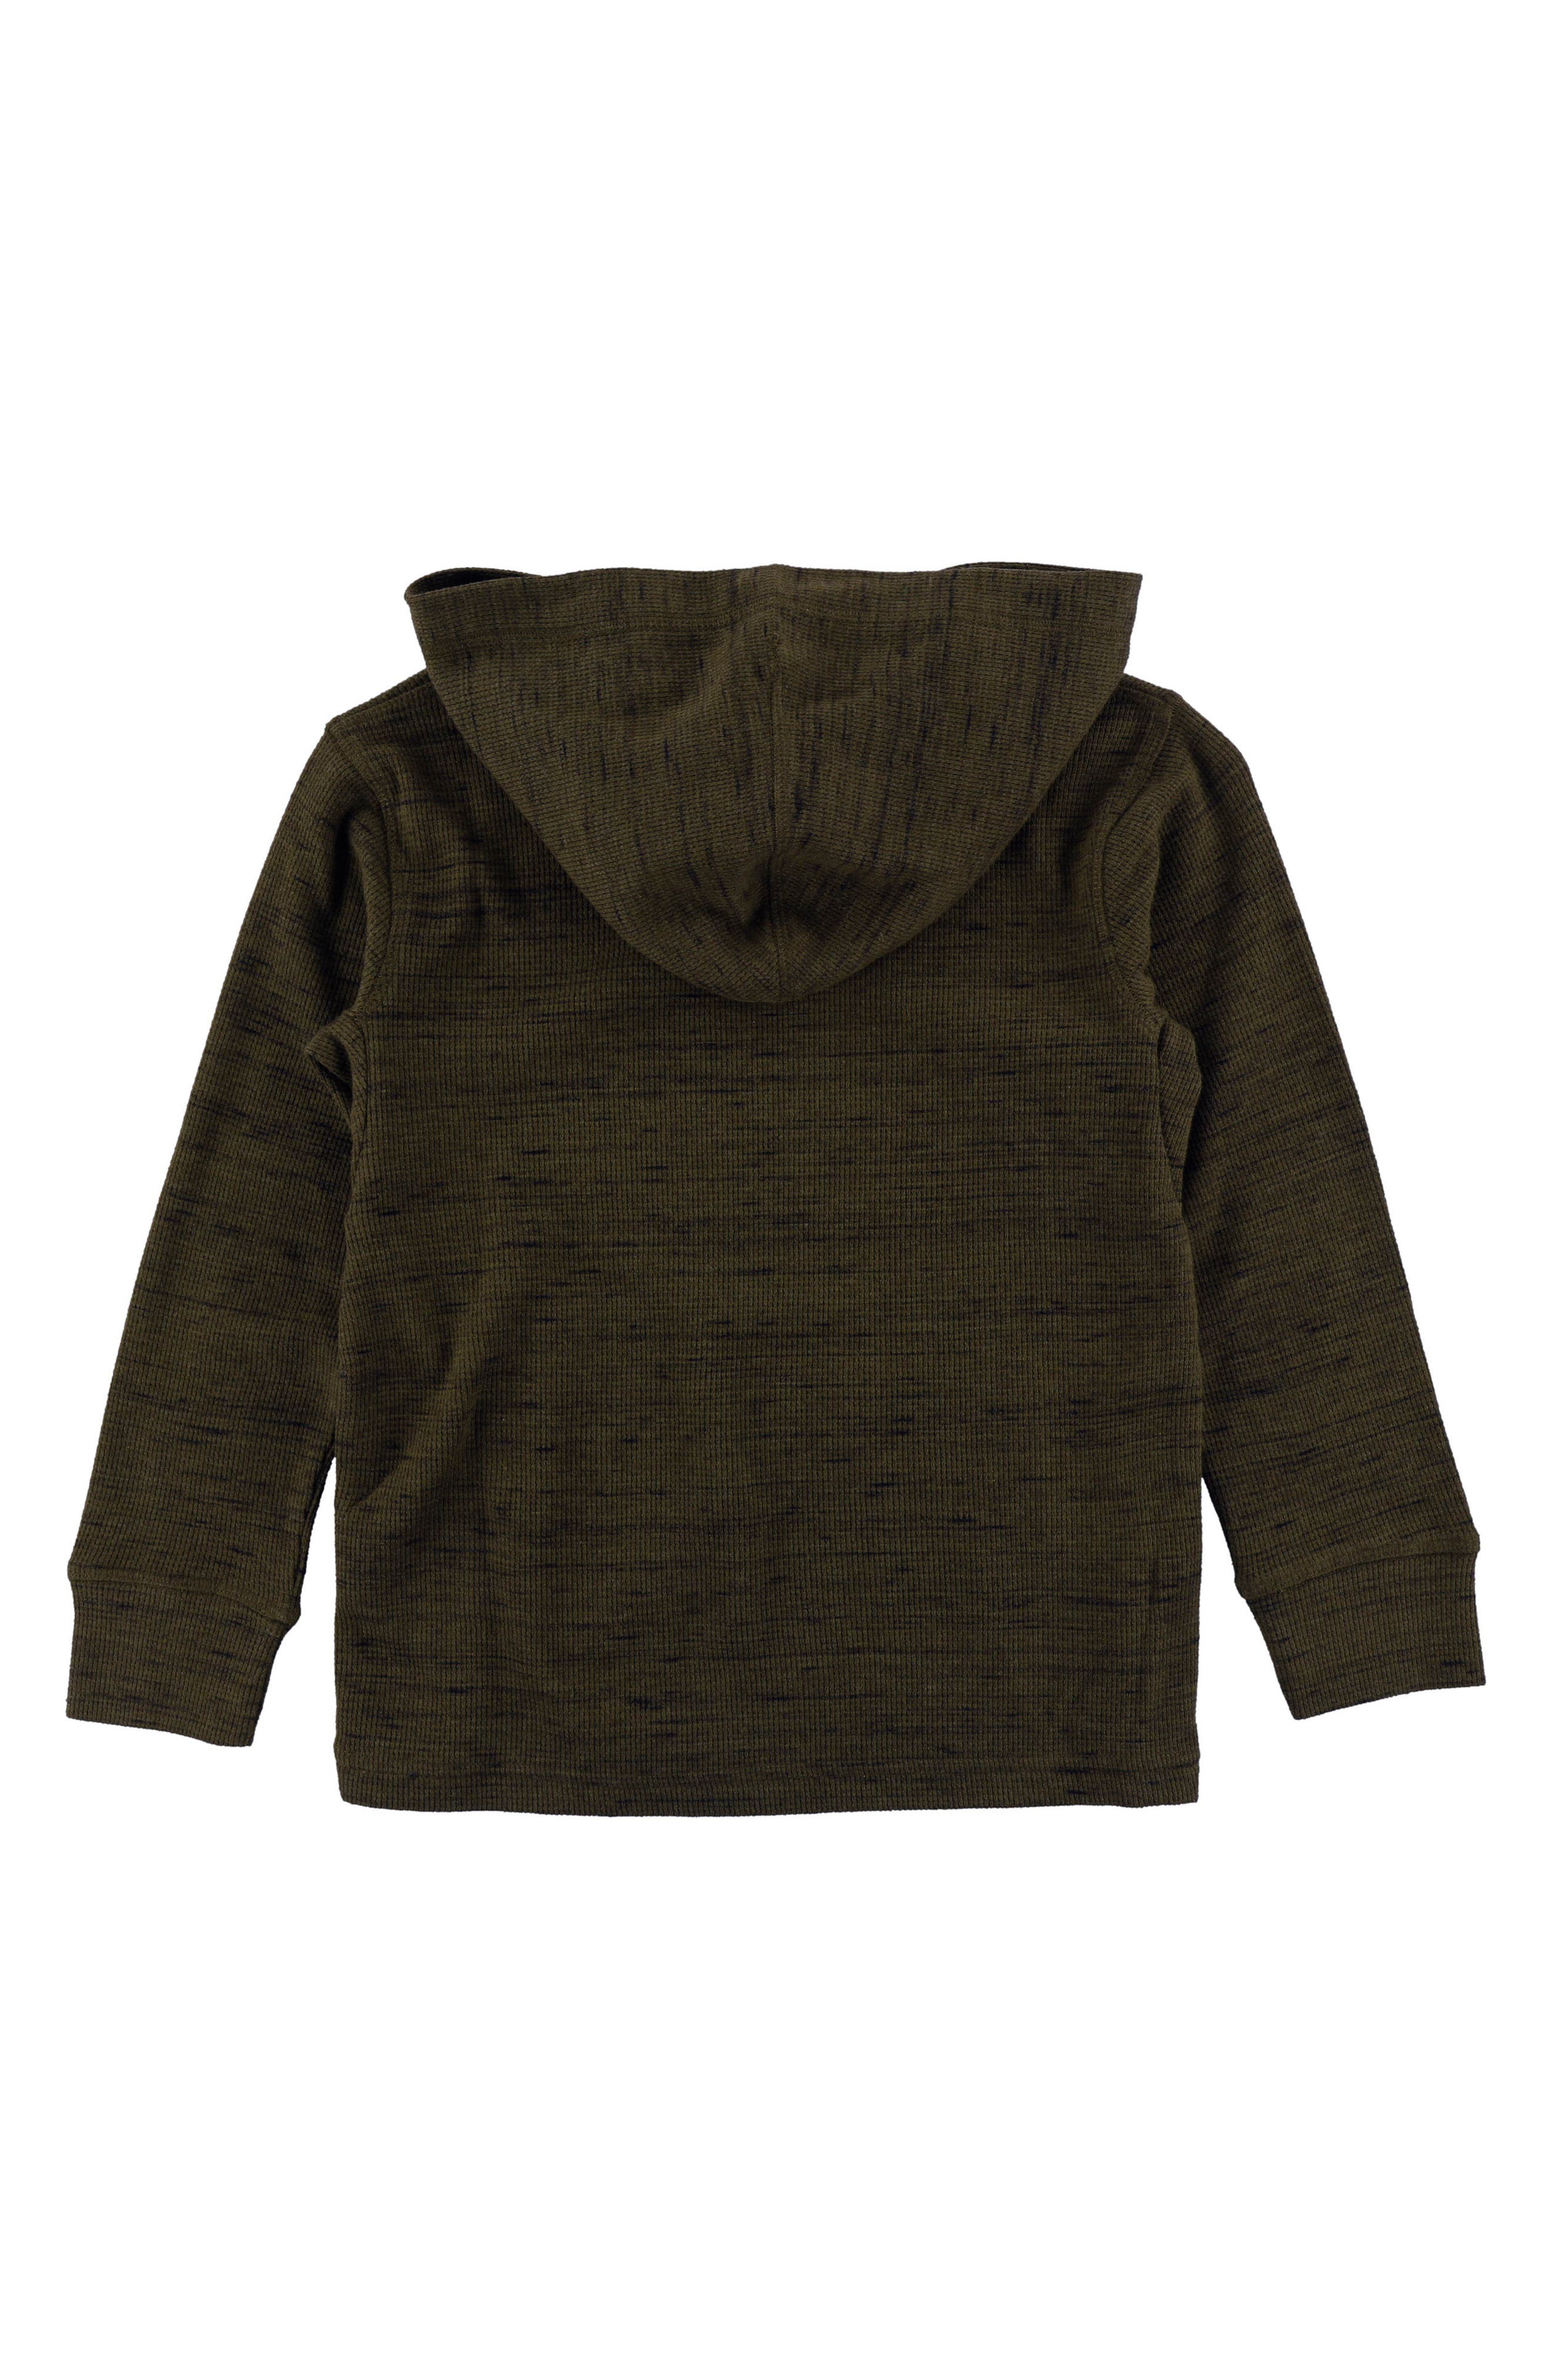 Boldin Thermal Pullover Hoodie,                         Main,                         color,